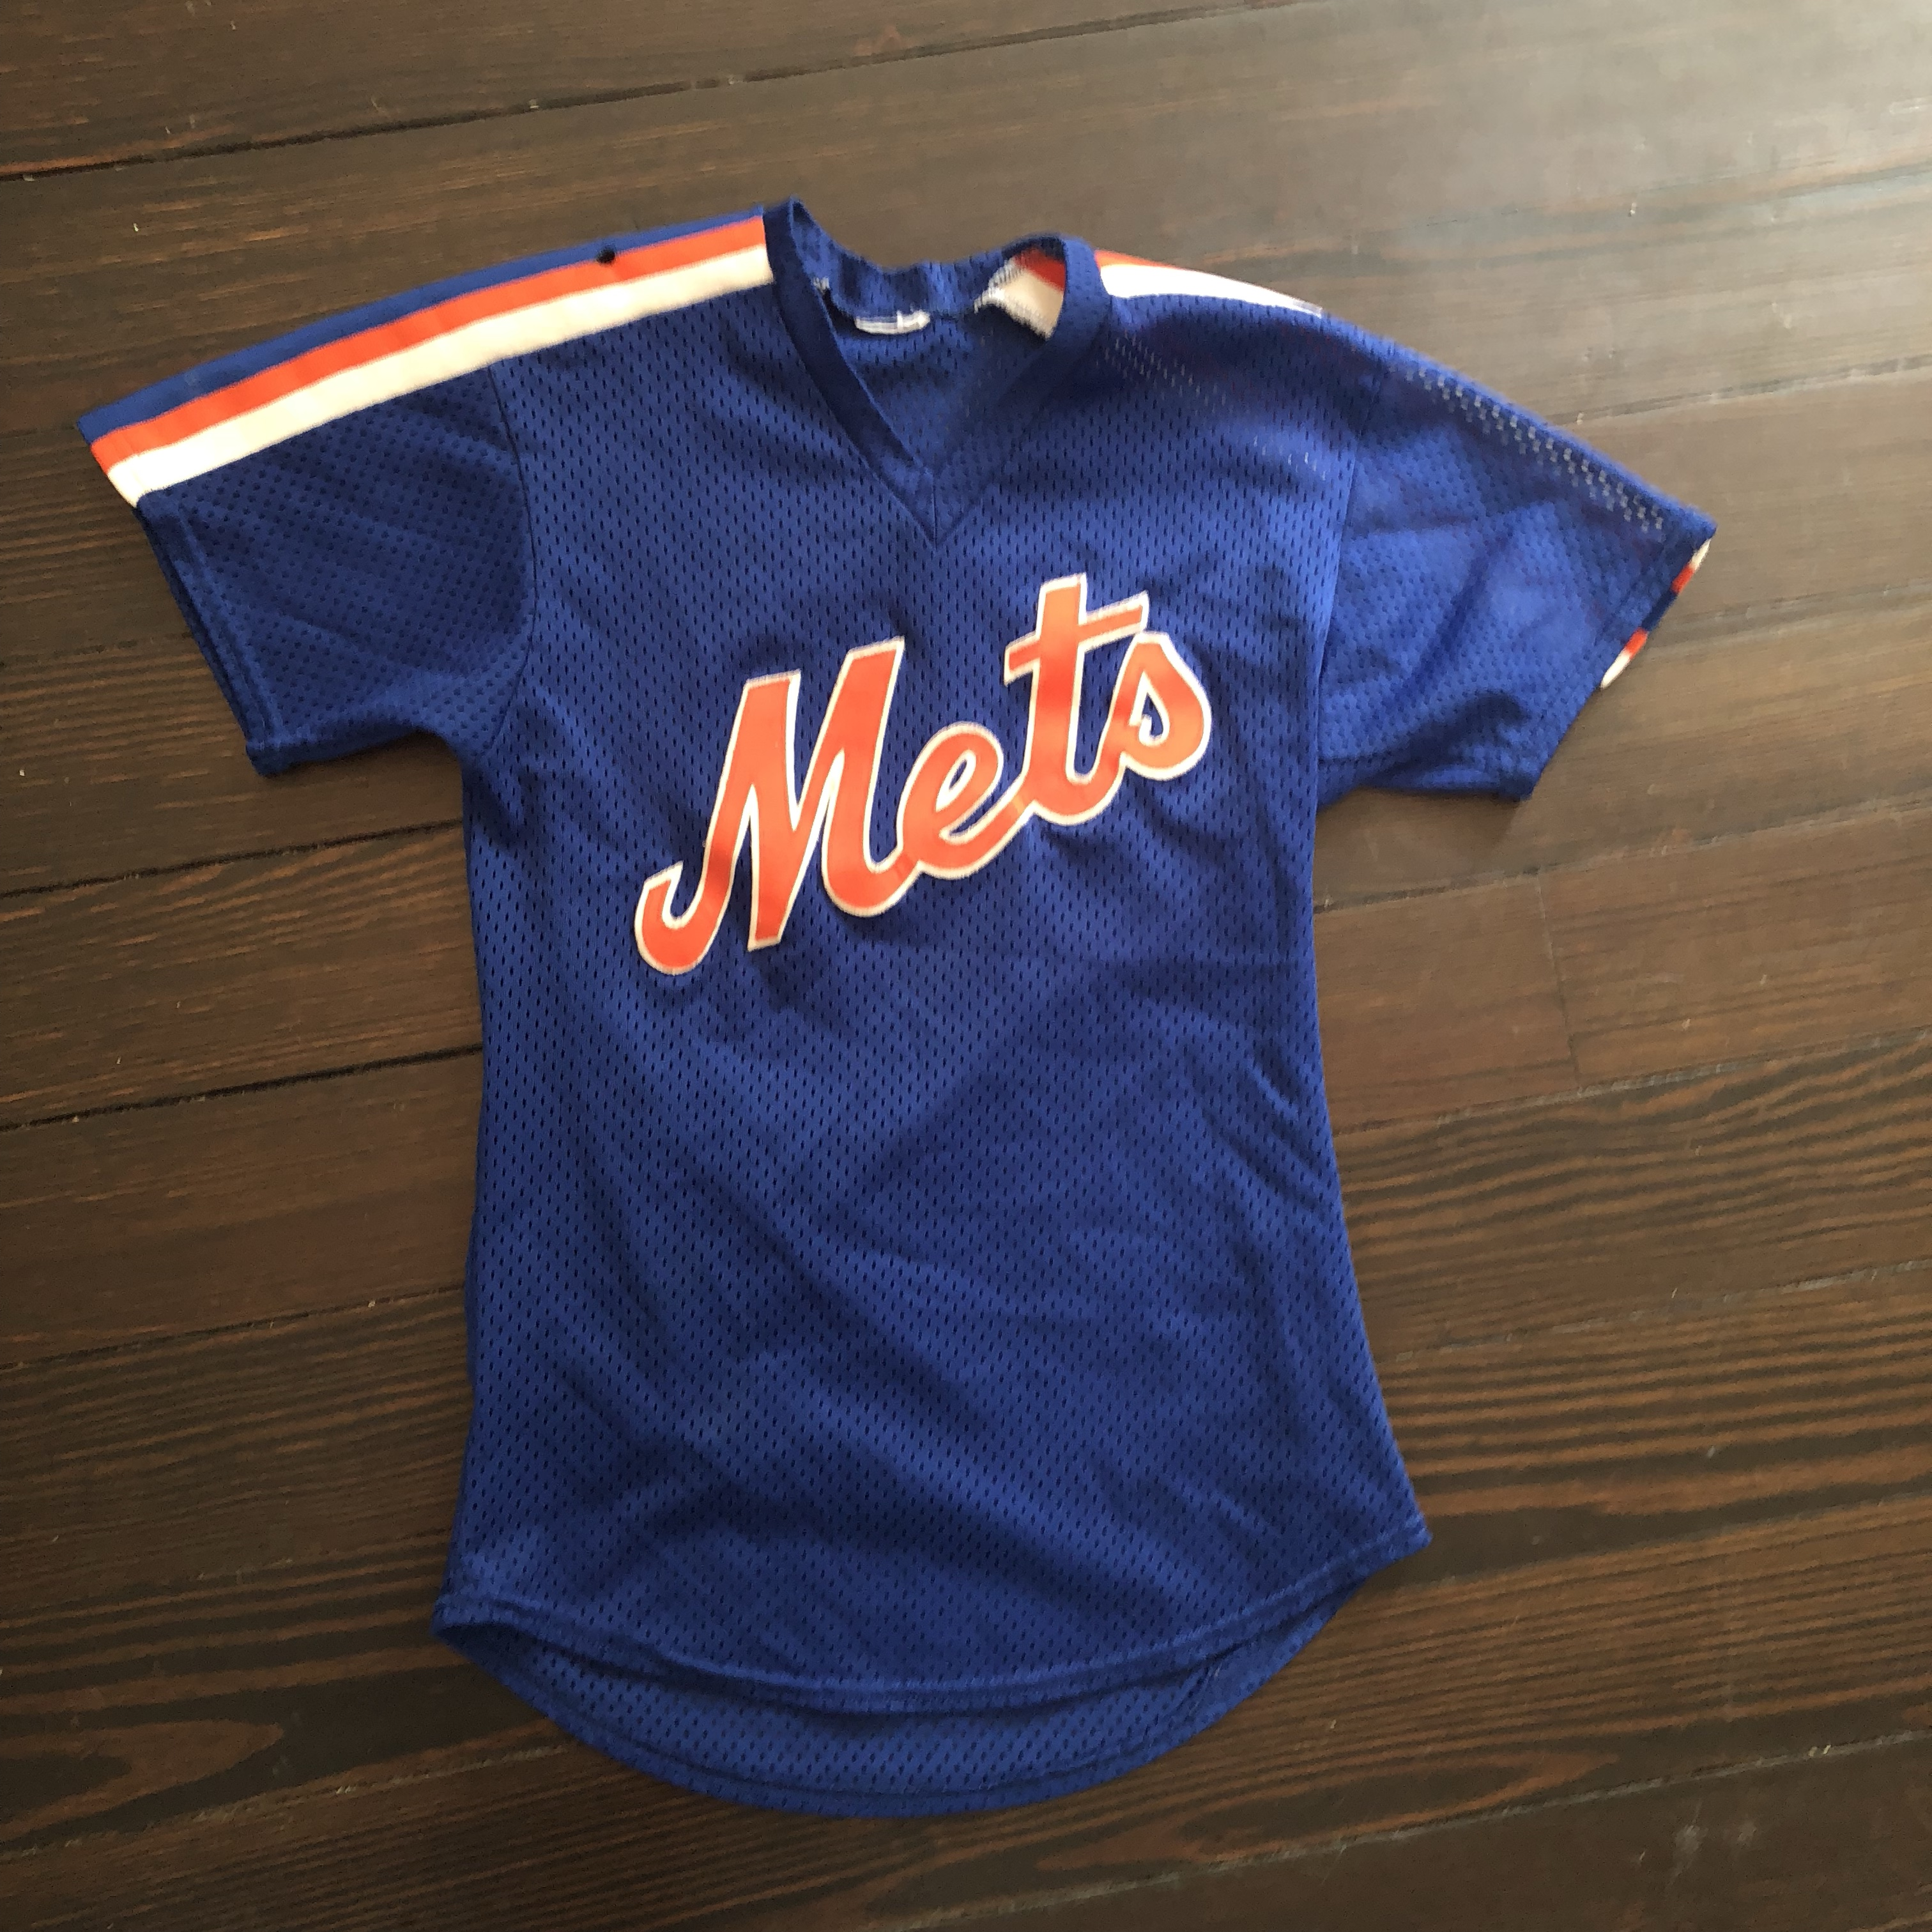 reputable site 68592 24e23 New York Mets Throwback Jersey **Authenticity... - Depop